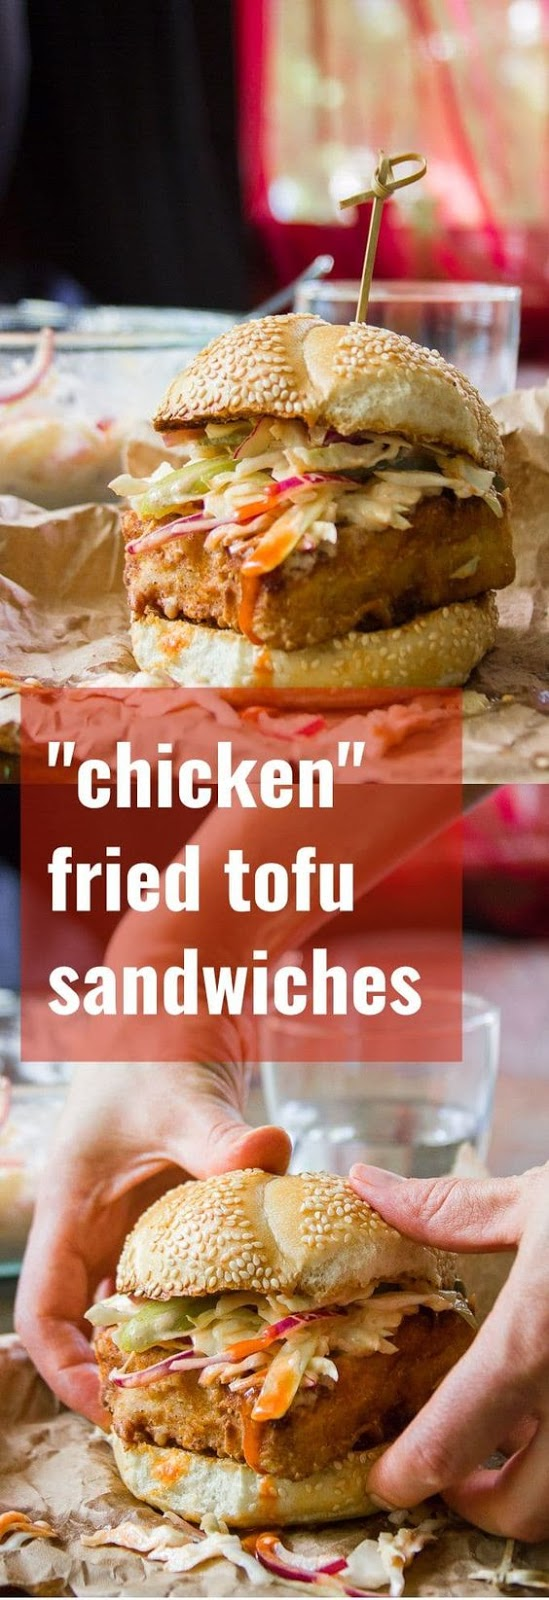 "Marinated tofu is battered and fried to a golden crisp to make these mouth-watering ""chicken"" style fried tofu sandwiches. Top with creamy dairy-free Buffalo slaw for a scrumptious vegan comfort food meal! #vegan #veganfood #veganrecipes #vegetarian #vegetarianrecipes #tofu #meatlessmonday"